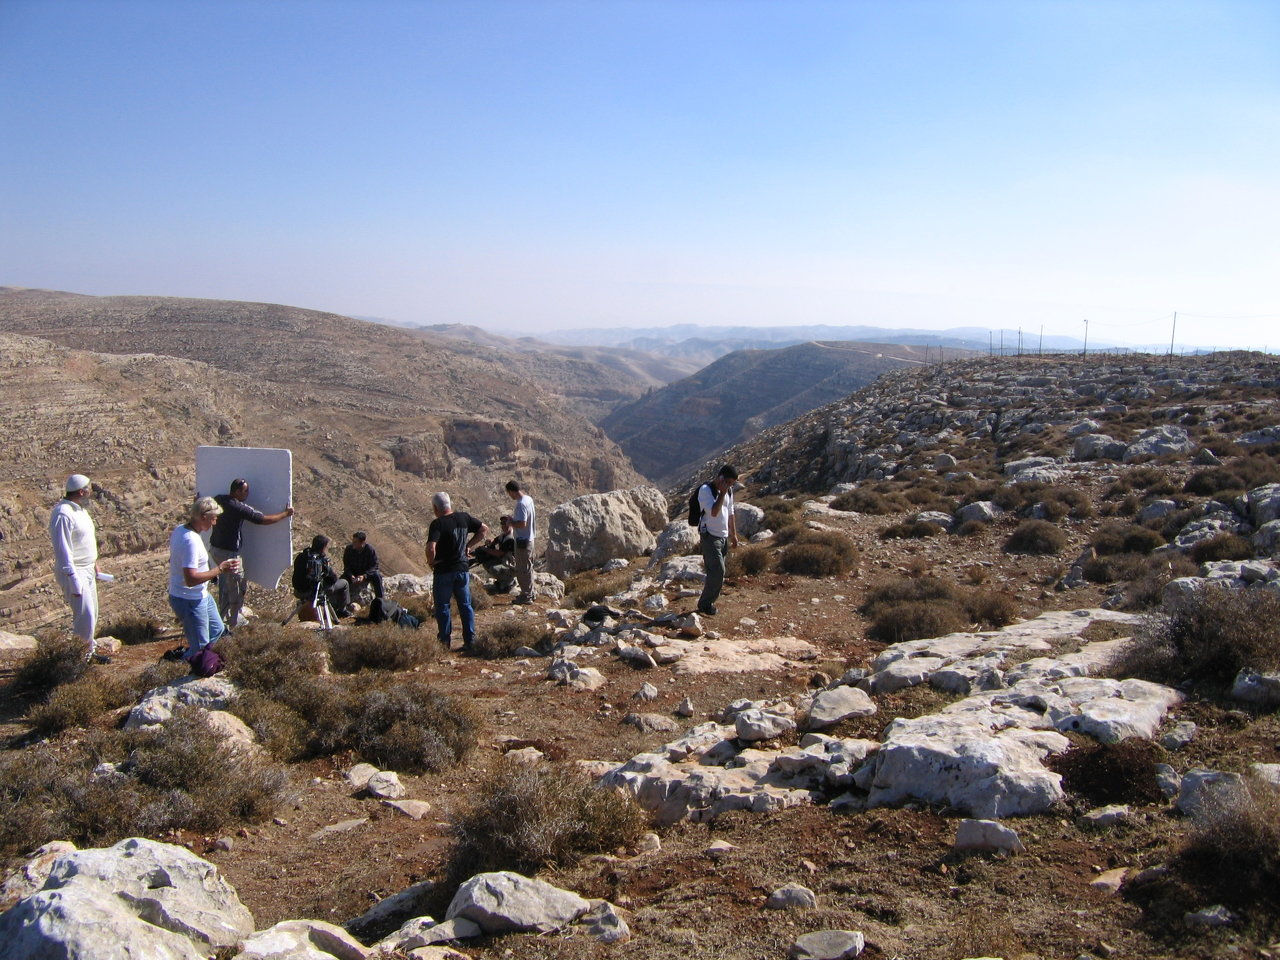 On location in Israel